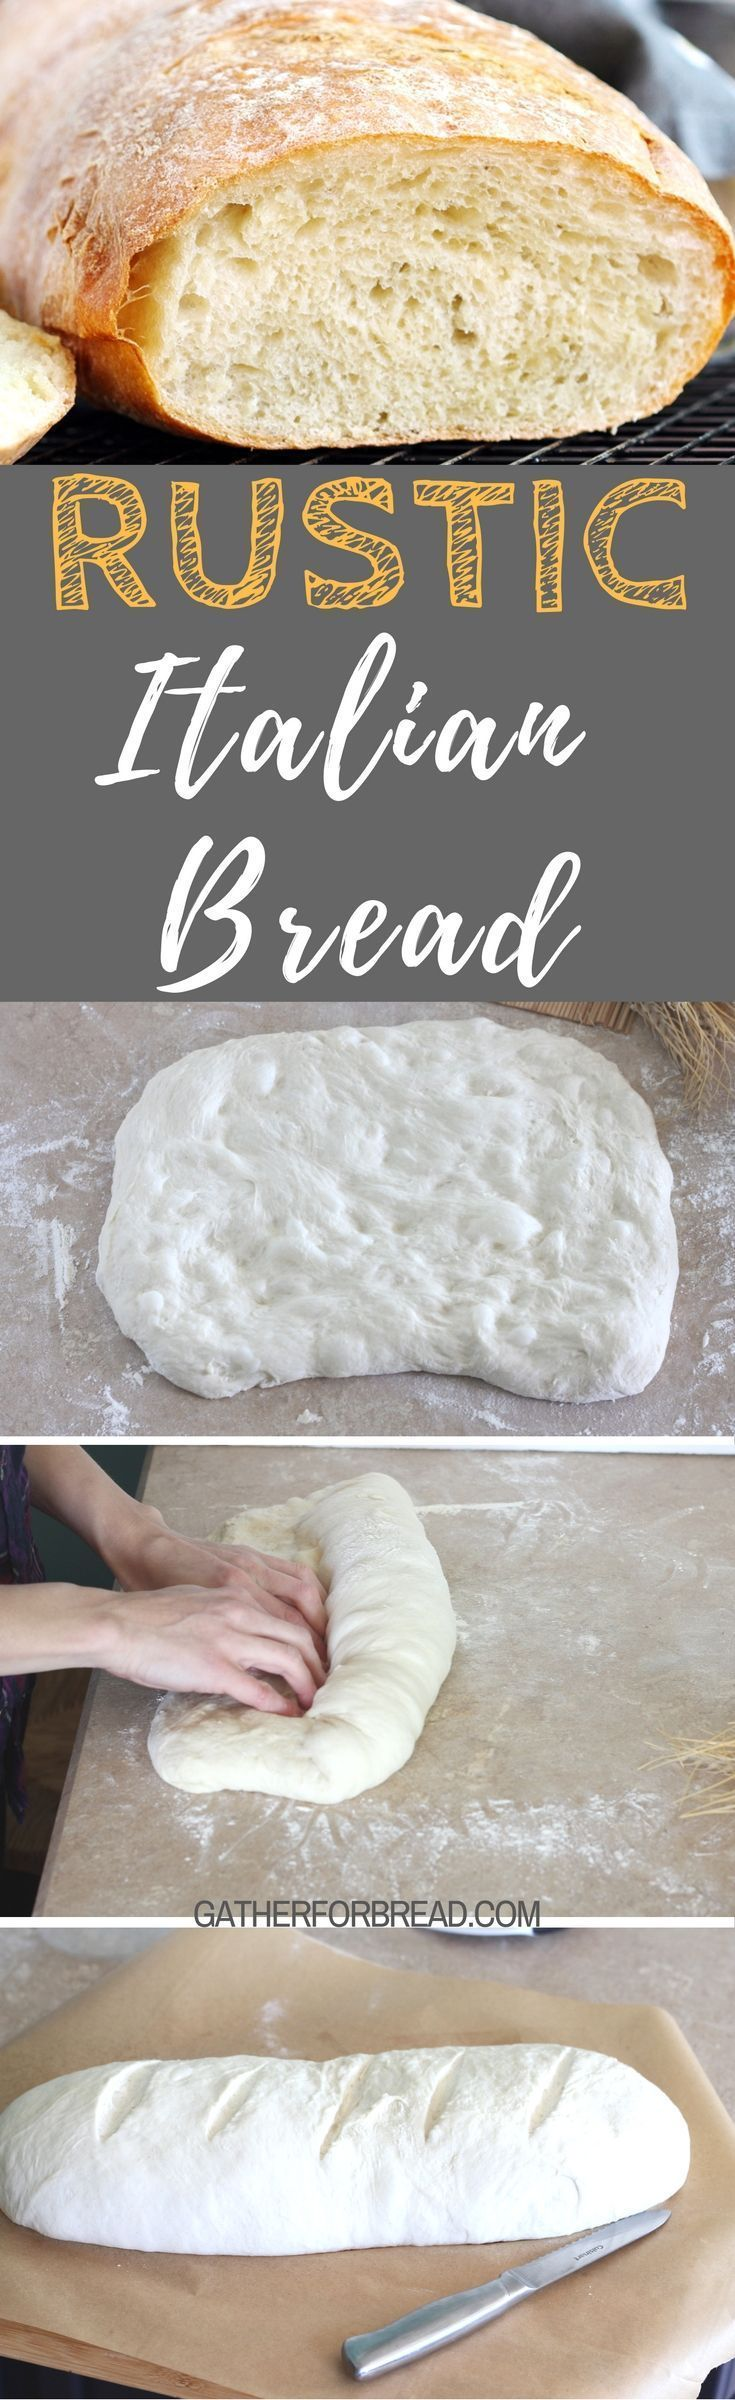 Rustic Italian Bread - How to make crusty homemade authentic Italian bread loaf . Tender crumb, crisp crust. Perfect pasta, soup and Sunday dinner.  #homemadebread #sundaydinner #Italian #bread #fromscratch